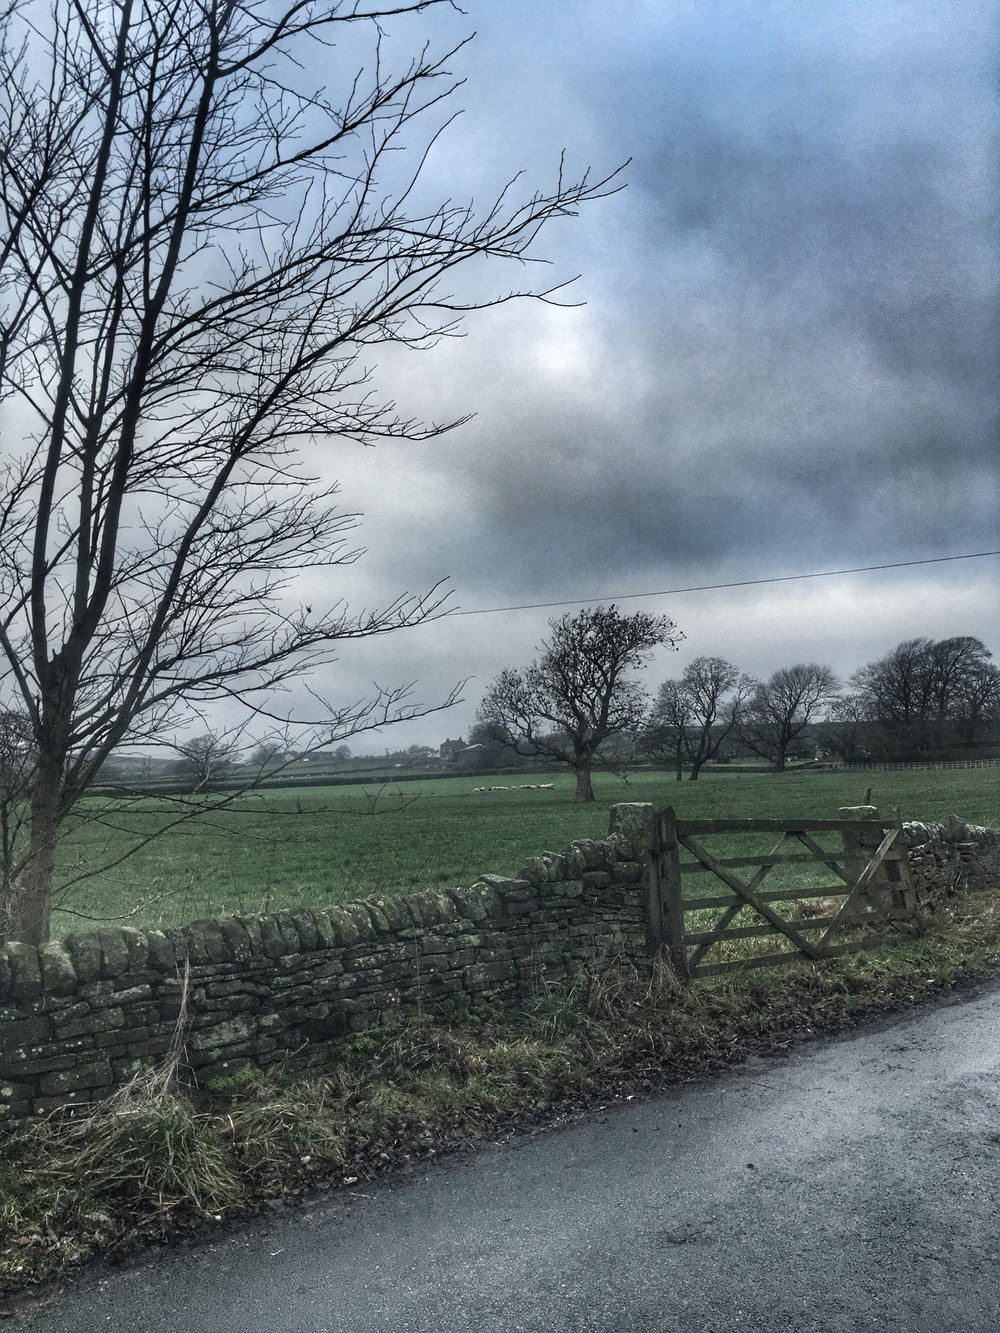 There's nothing like a blustery winter run to help get some headspace.